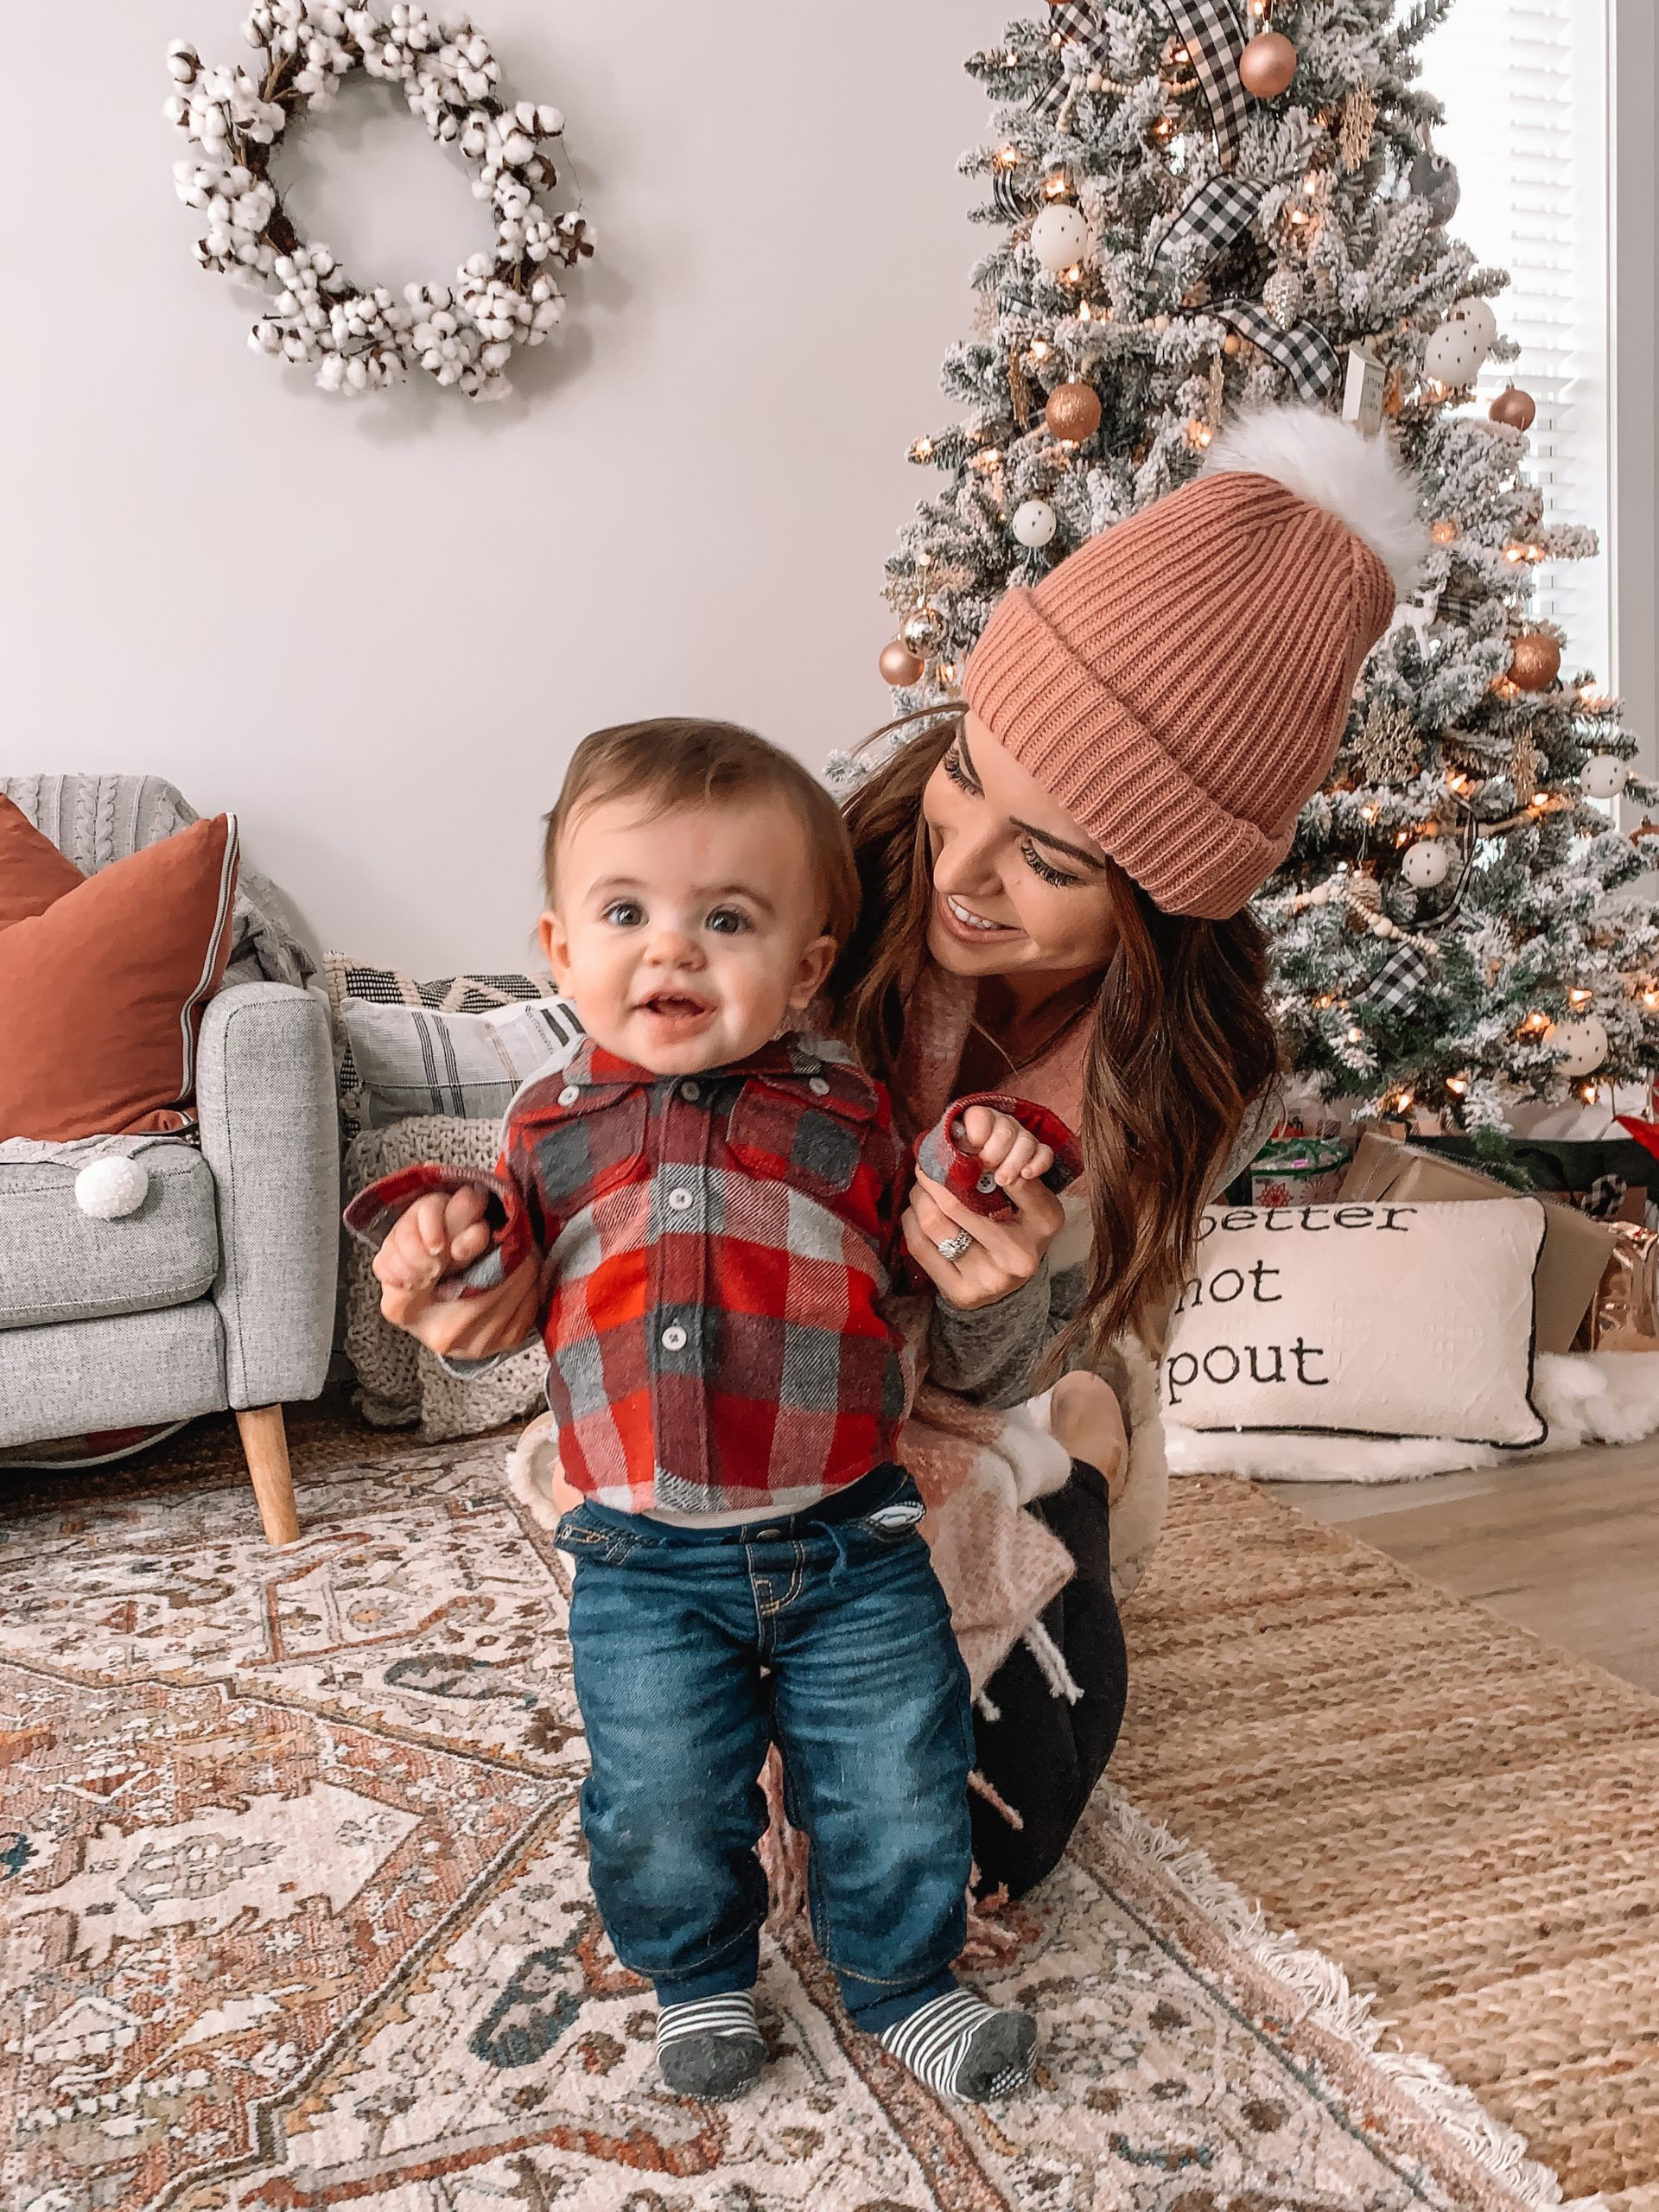 nordstrom gift guide for family, last minute Christmas shopping, gifts for him, for her, baby, toddler, kids, pets